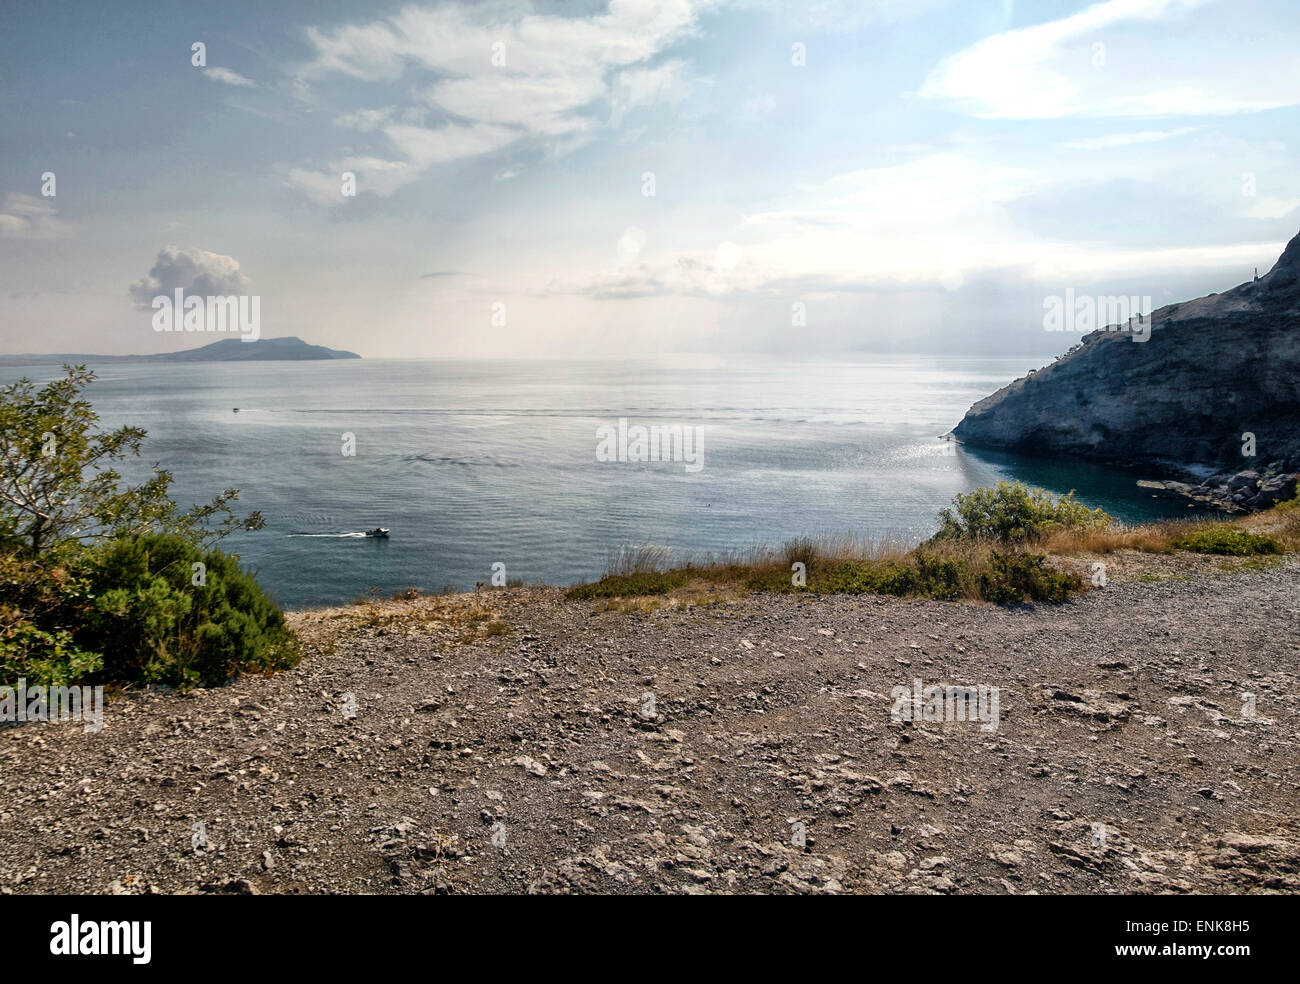 Crimea mountains and Black sea landscape, good sunny day - Stock Image